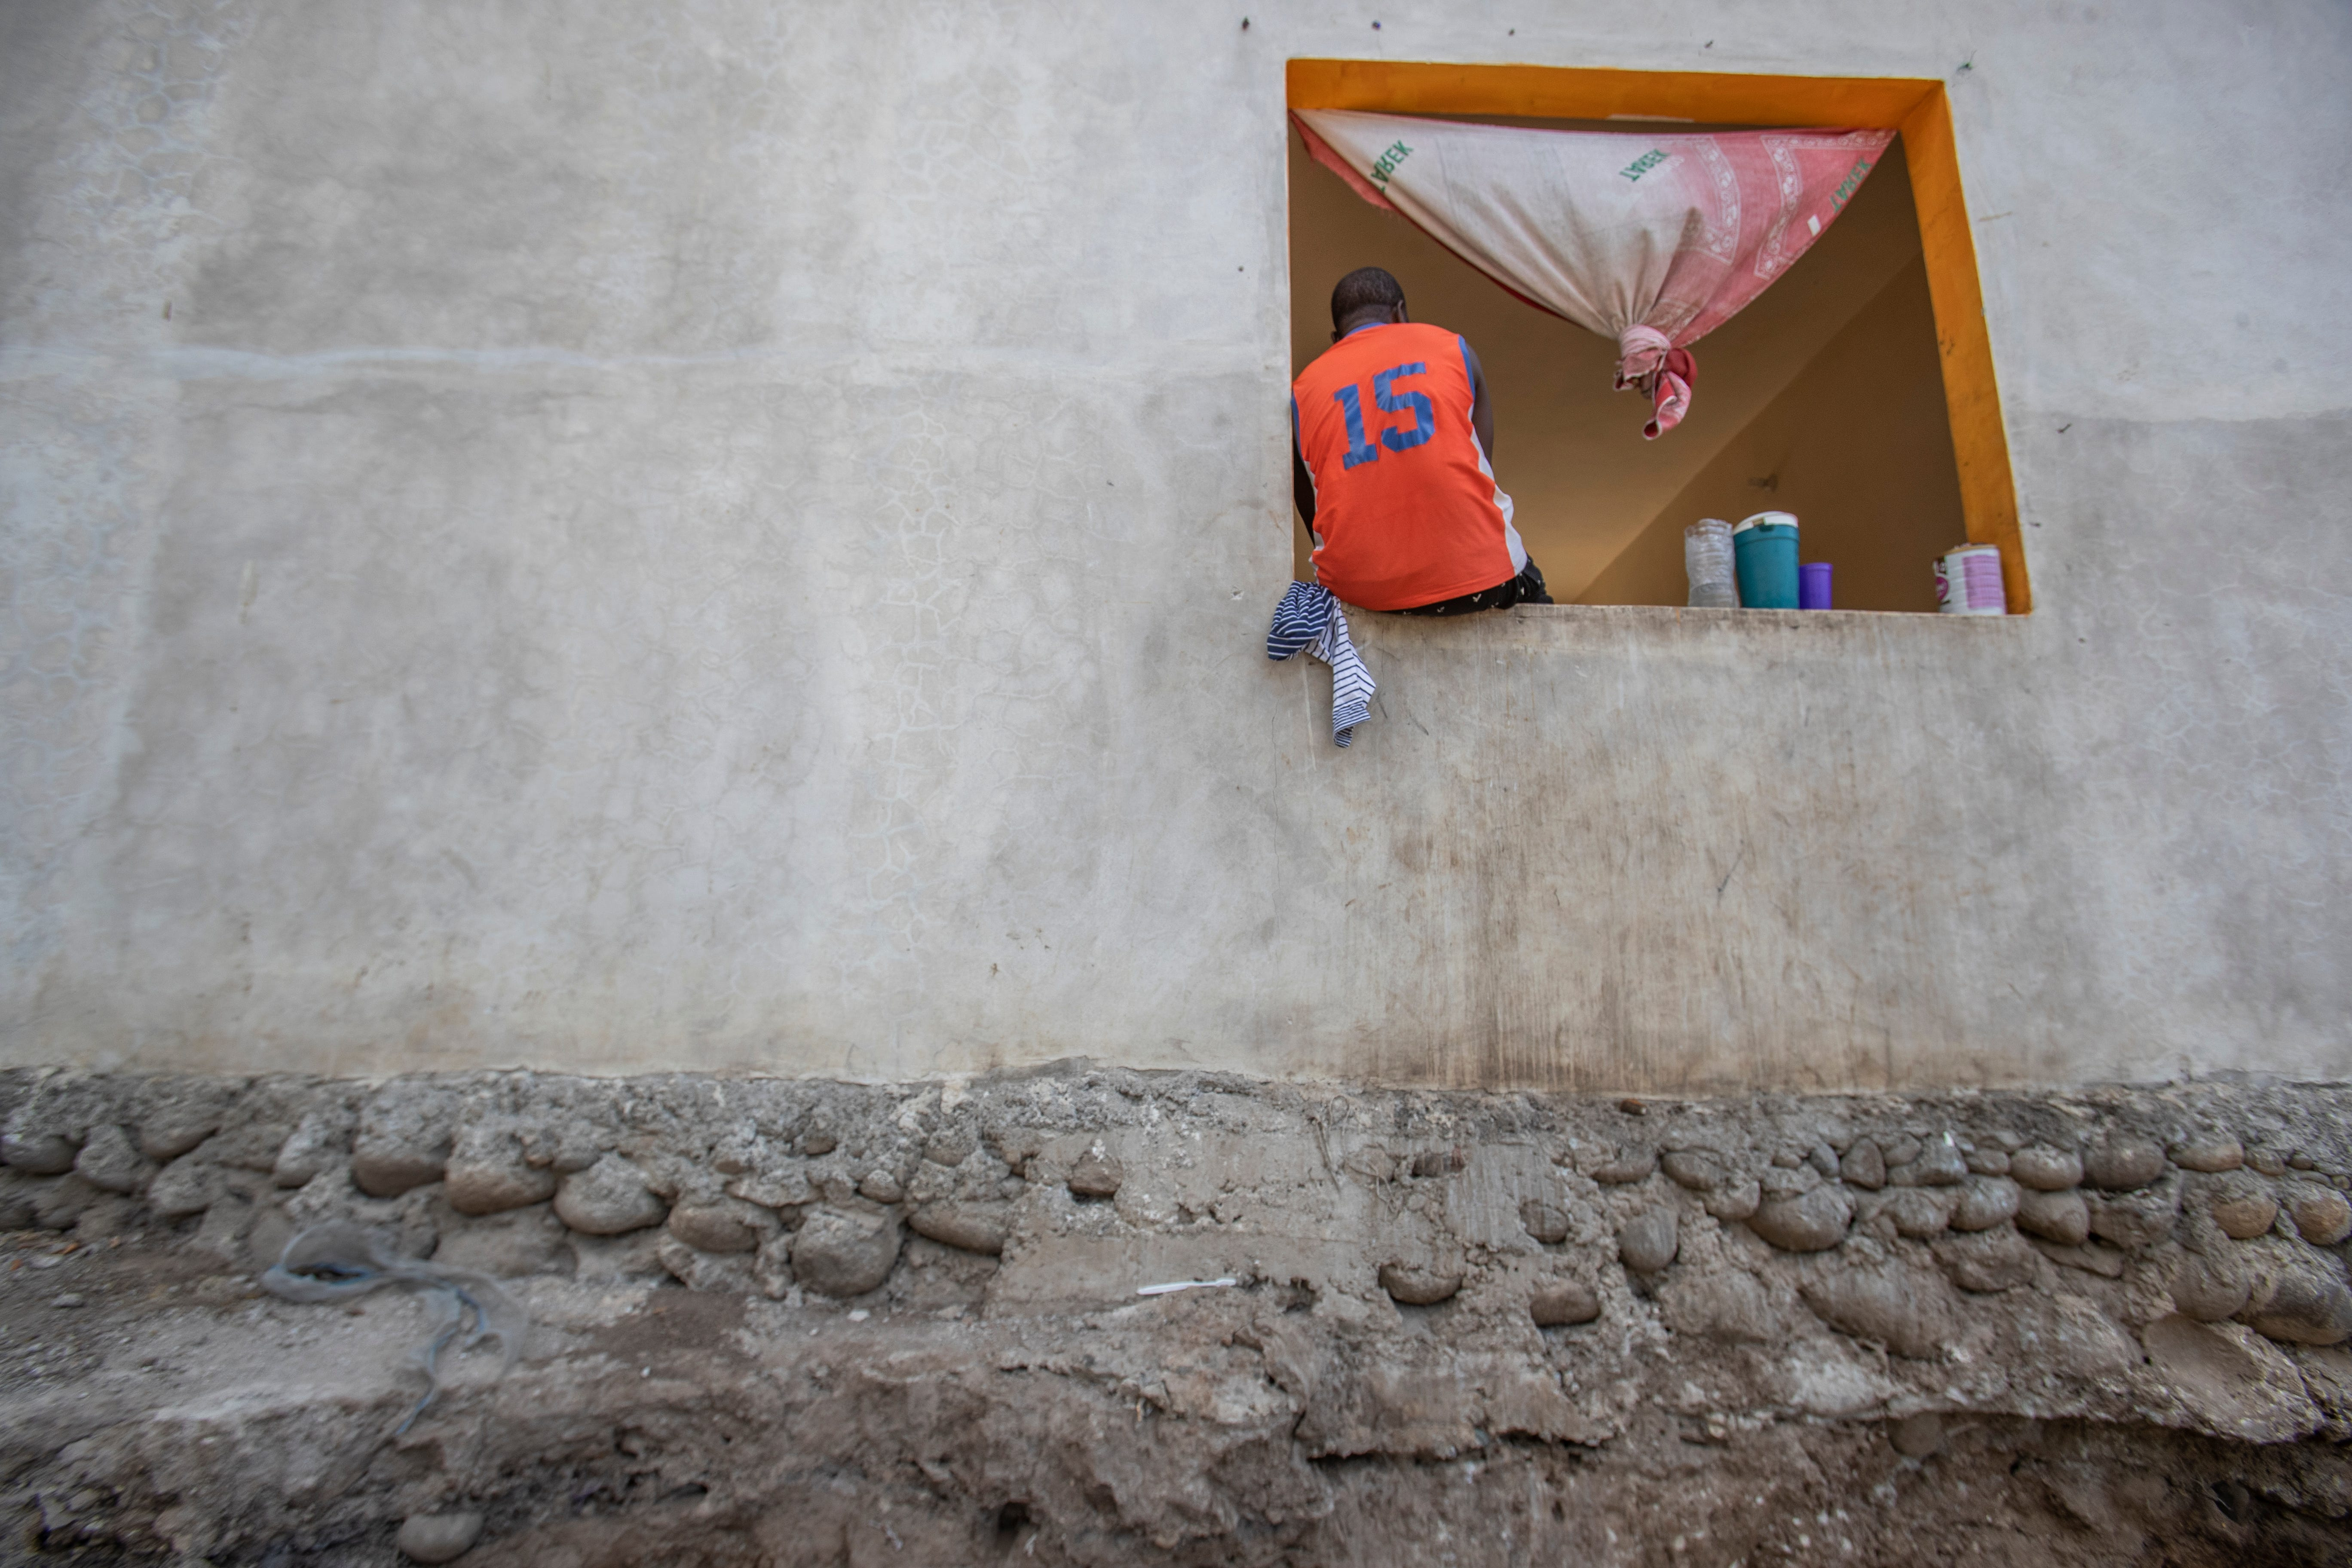 In late February, Haitian migrants at the shelter El Buen Pastor in Tapachula, Chiapas, Mexico, were waiting months for refugee status or asylum in Mexico.